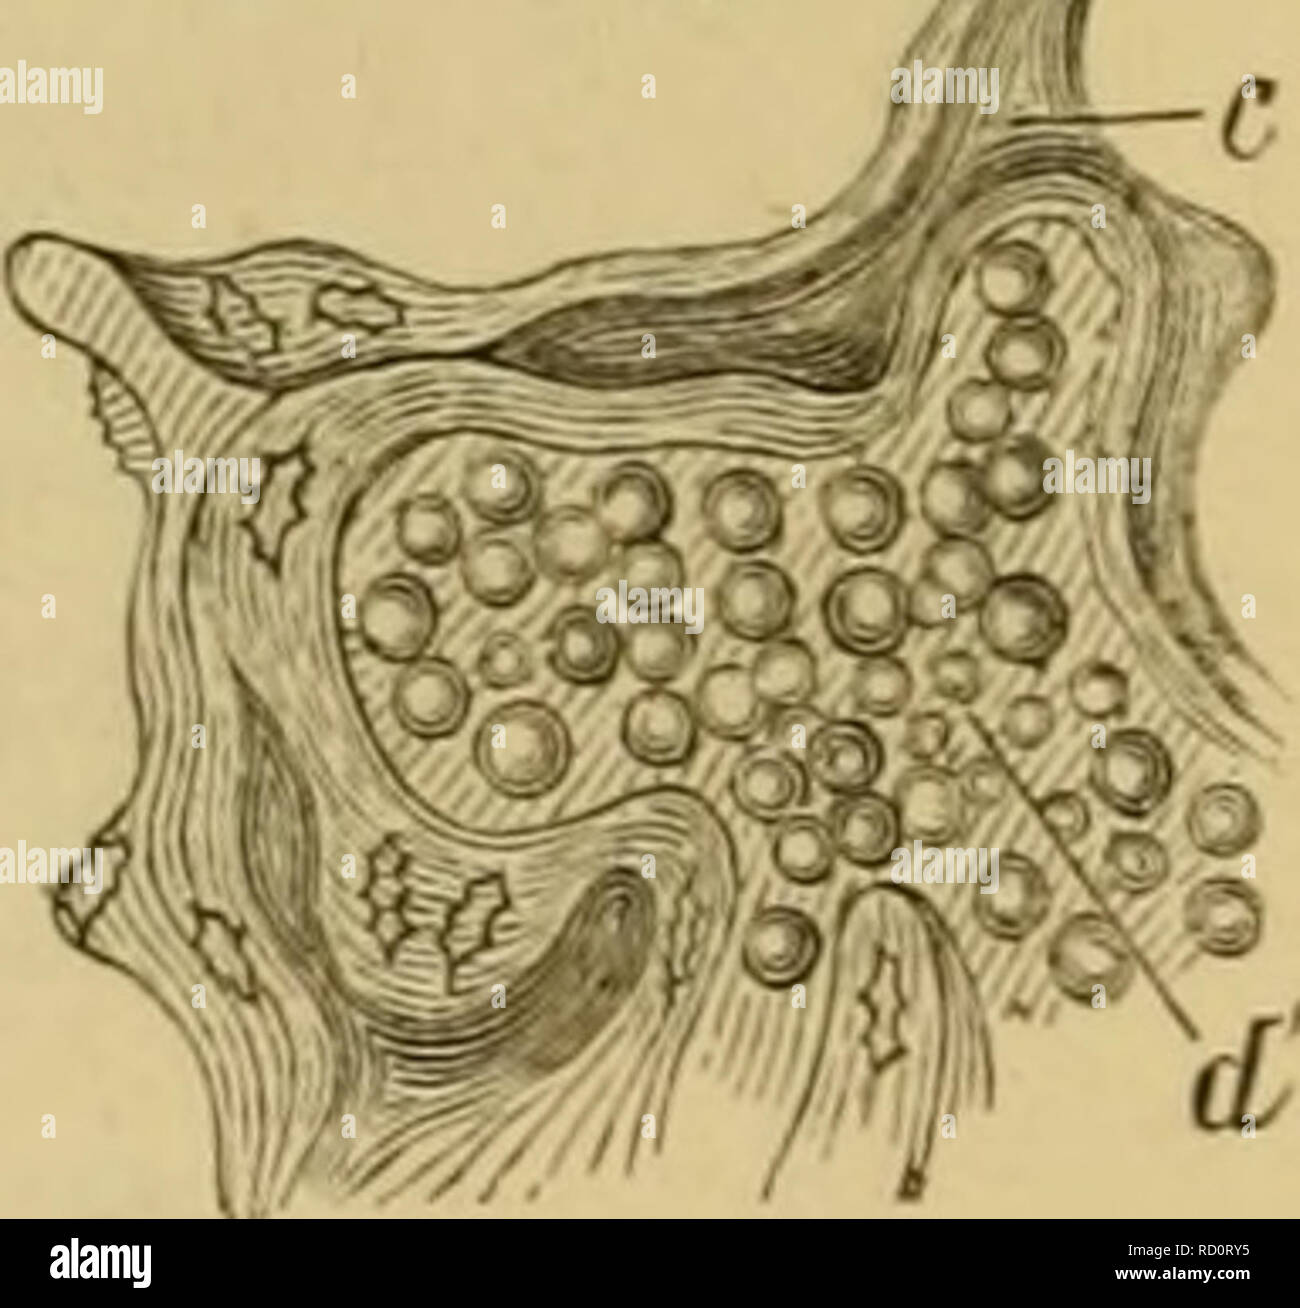 . Elementary text-book of zoology, general part and special part: protozoa to insecta. Animals. )i. Fig. 32.—Sectionthrougli *he roocof a tooth (after KoUiker). C, cement; J, intei'globular spaces D, dentine with dentinal tubes. of bones; and a primary was distinguished from a second- ary method of bone develop- ment. In reality the two processes resemble each other closely. For in the latter case, in conjunction with a precedent deposition of lime, and partial destruction or reduction of the cartilage, there is a new formation of a soft connective tissue-substance (osteogenic substance) from  - Stock Image